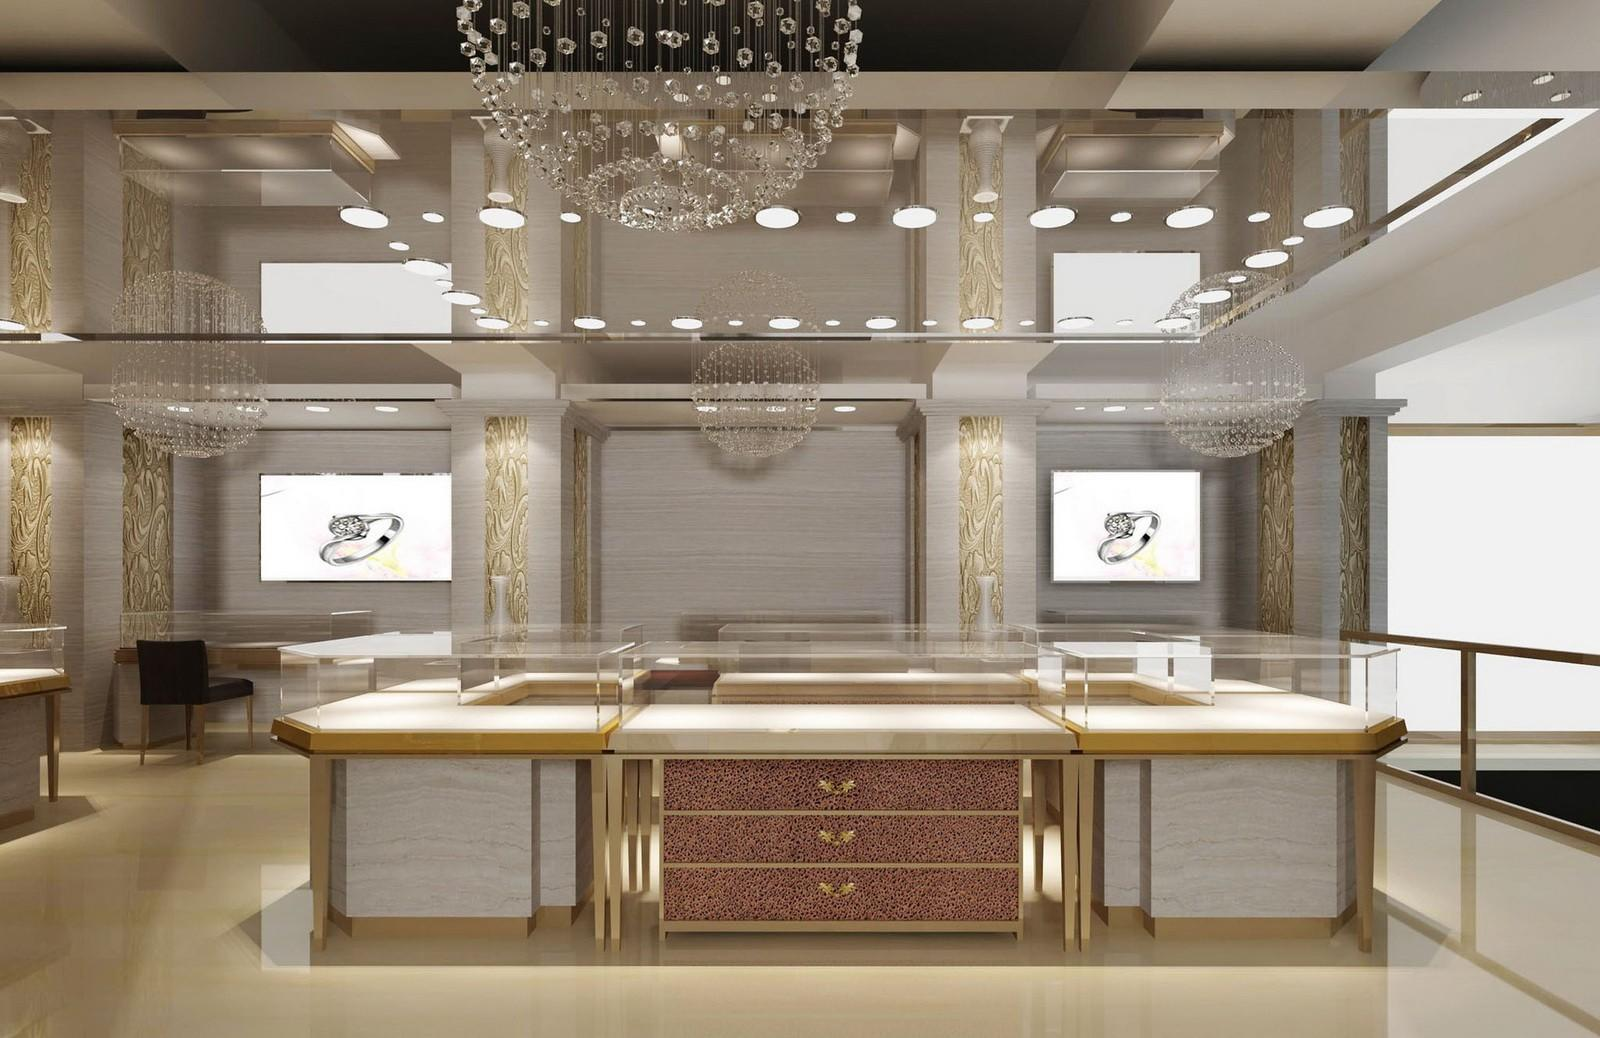 jewellery shop showcase design latest for store OUYEE-3